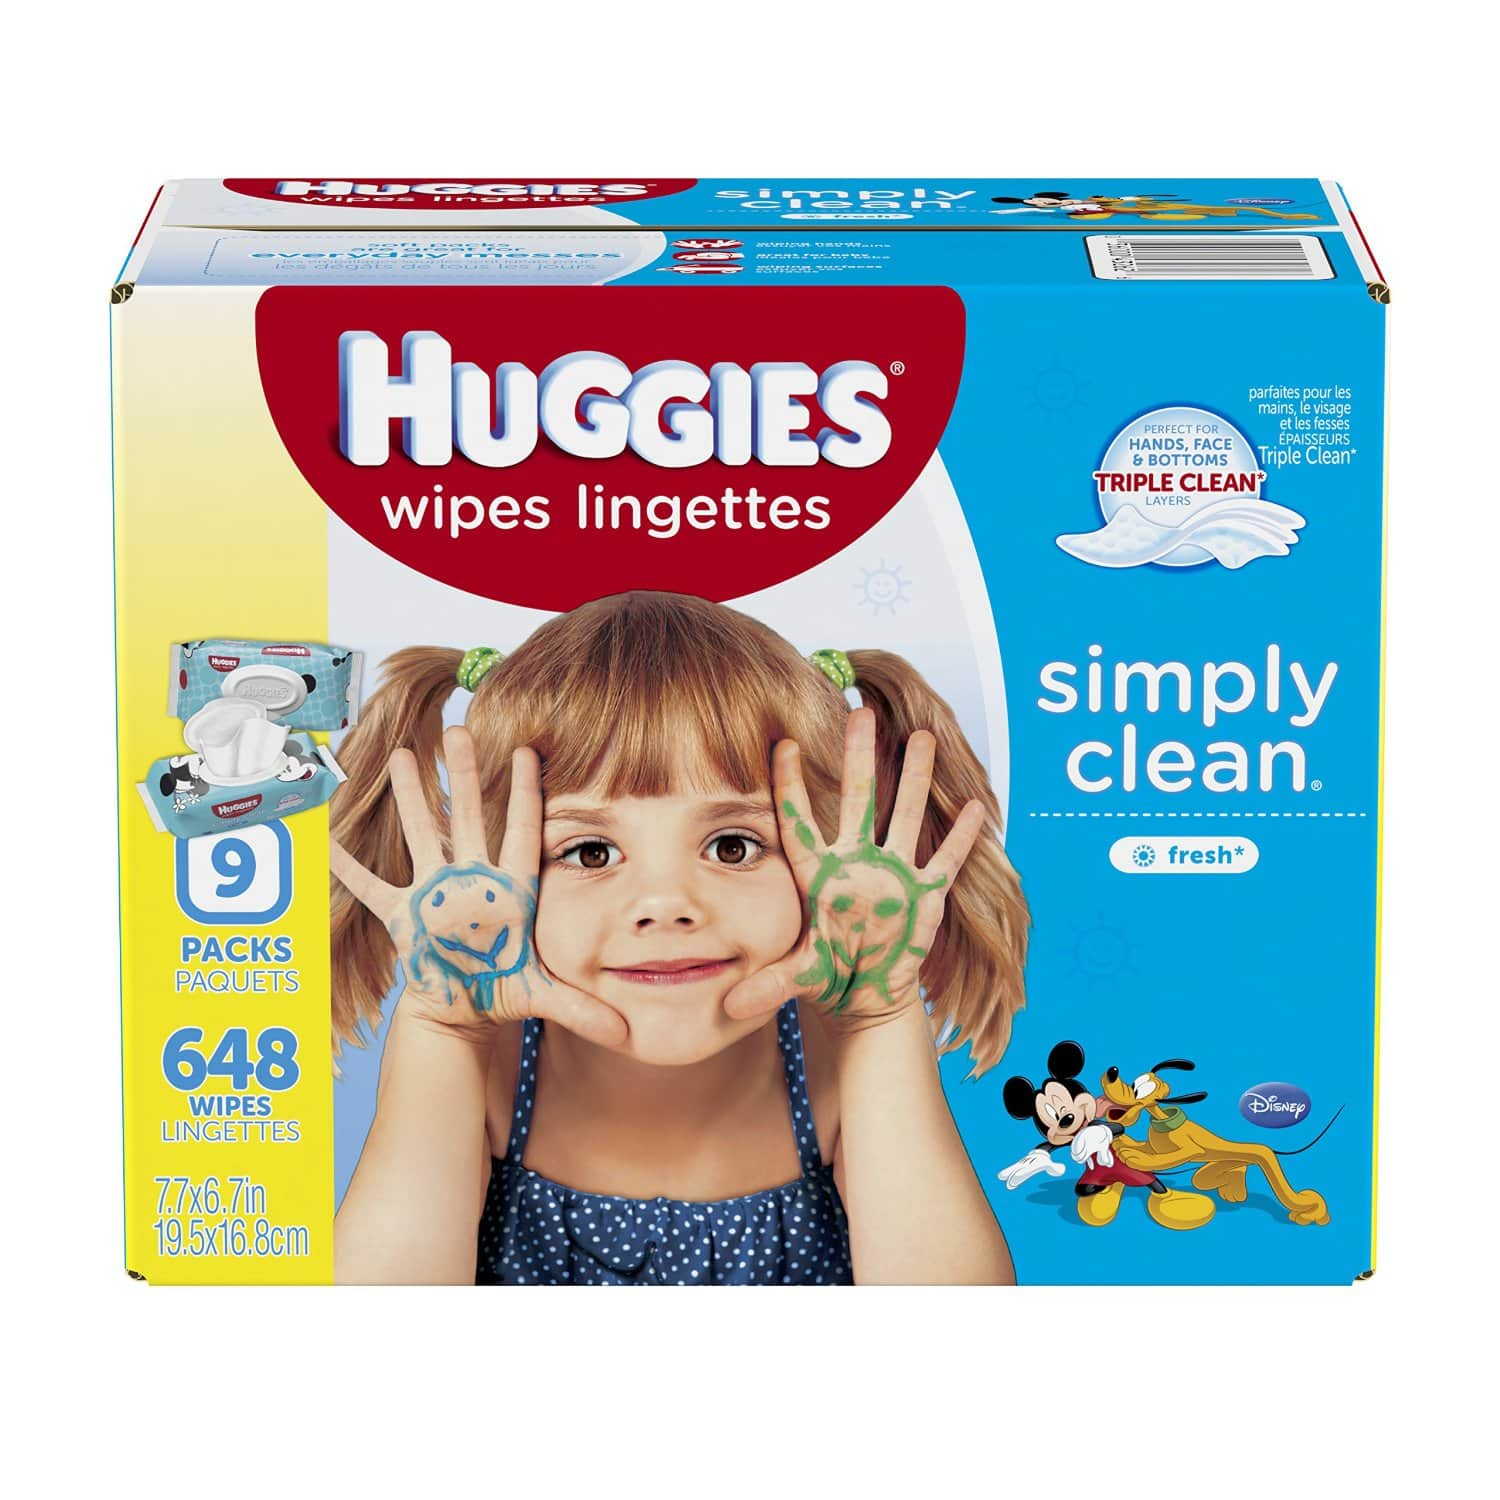 Huggies baby wipes, 648-Count for $8.32 w/ 5% S&S or $7.02 with 15% S&S at Amazon